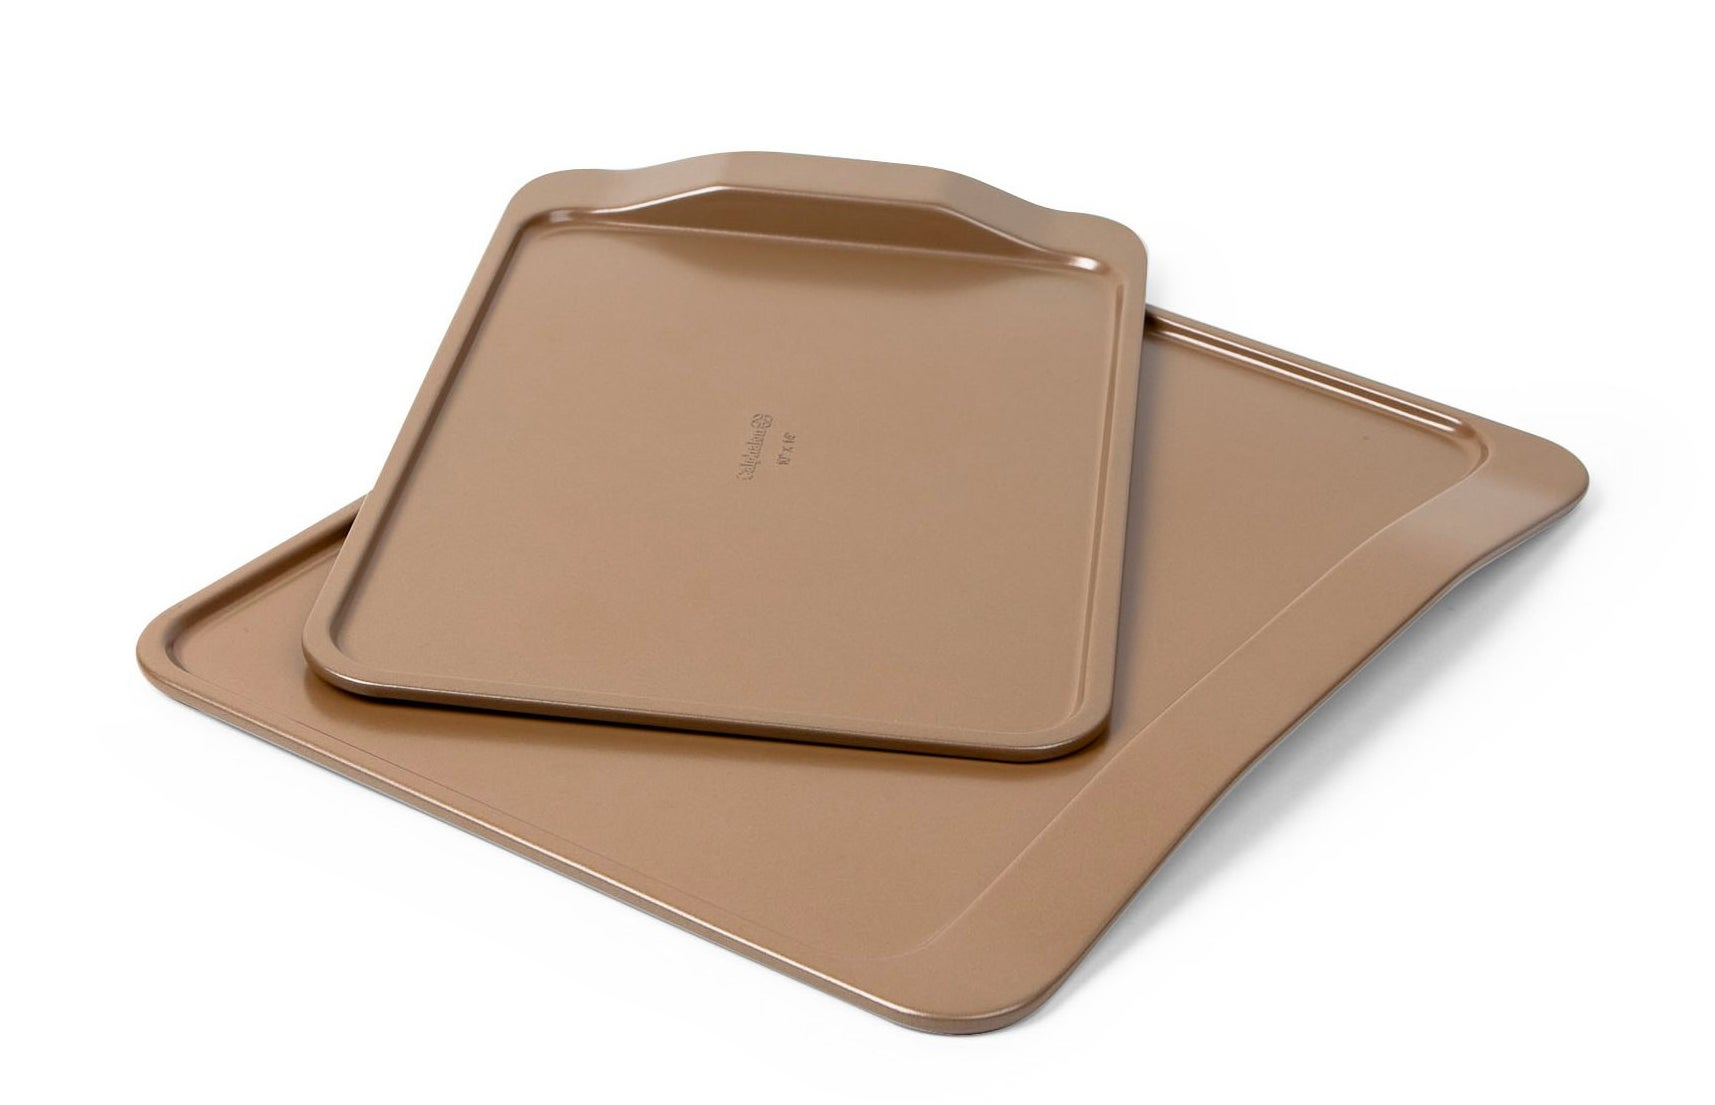 The tan cookie sheets